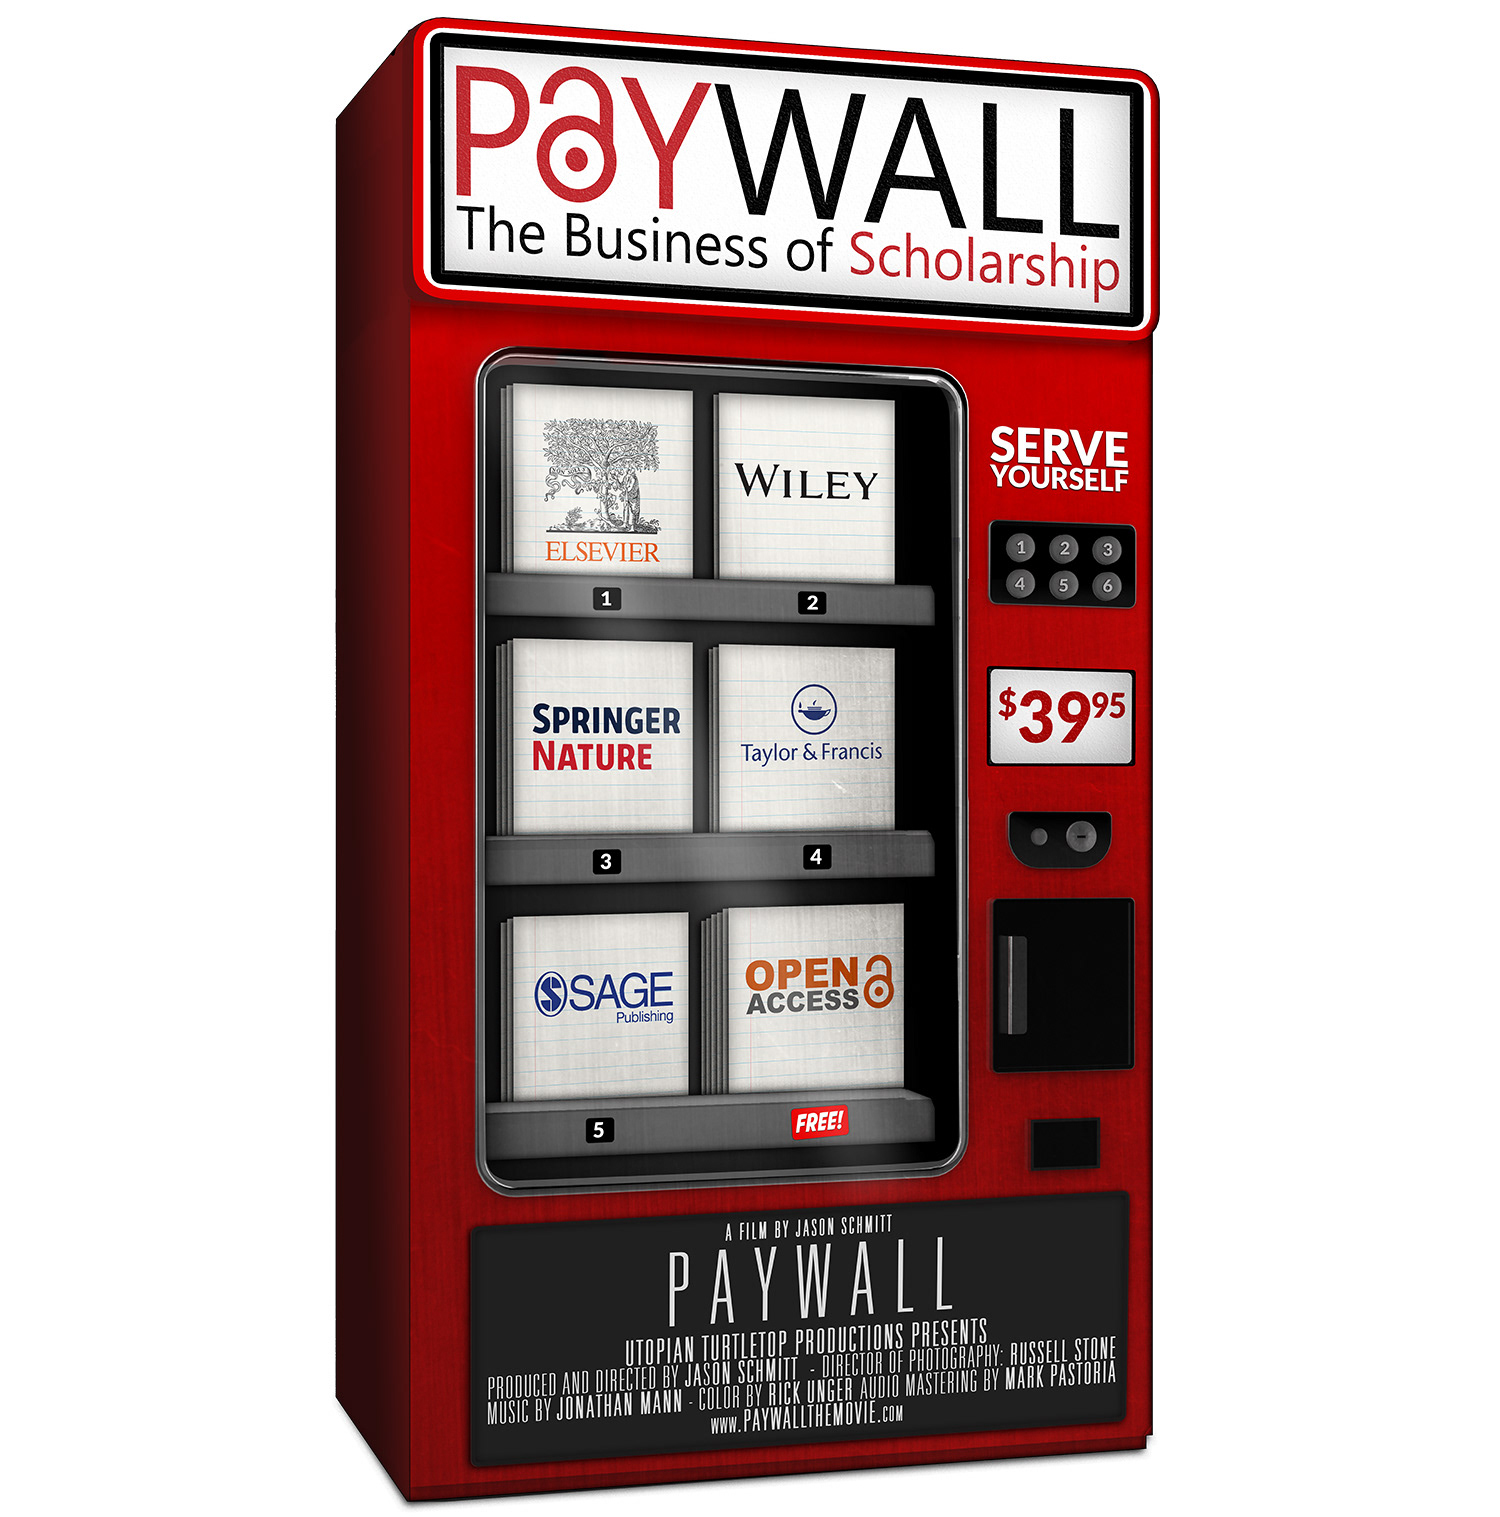 Image of vending machine of scholarly articles charging $39.95 each